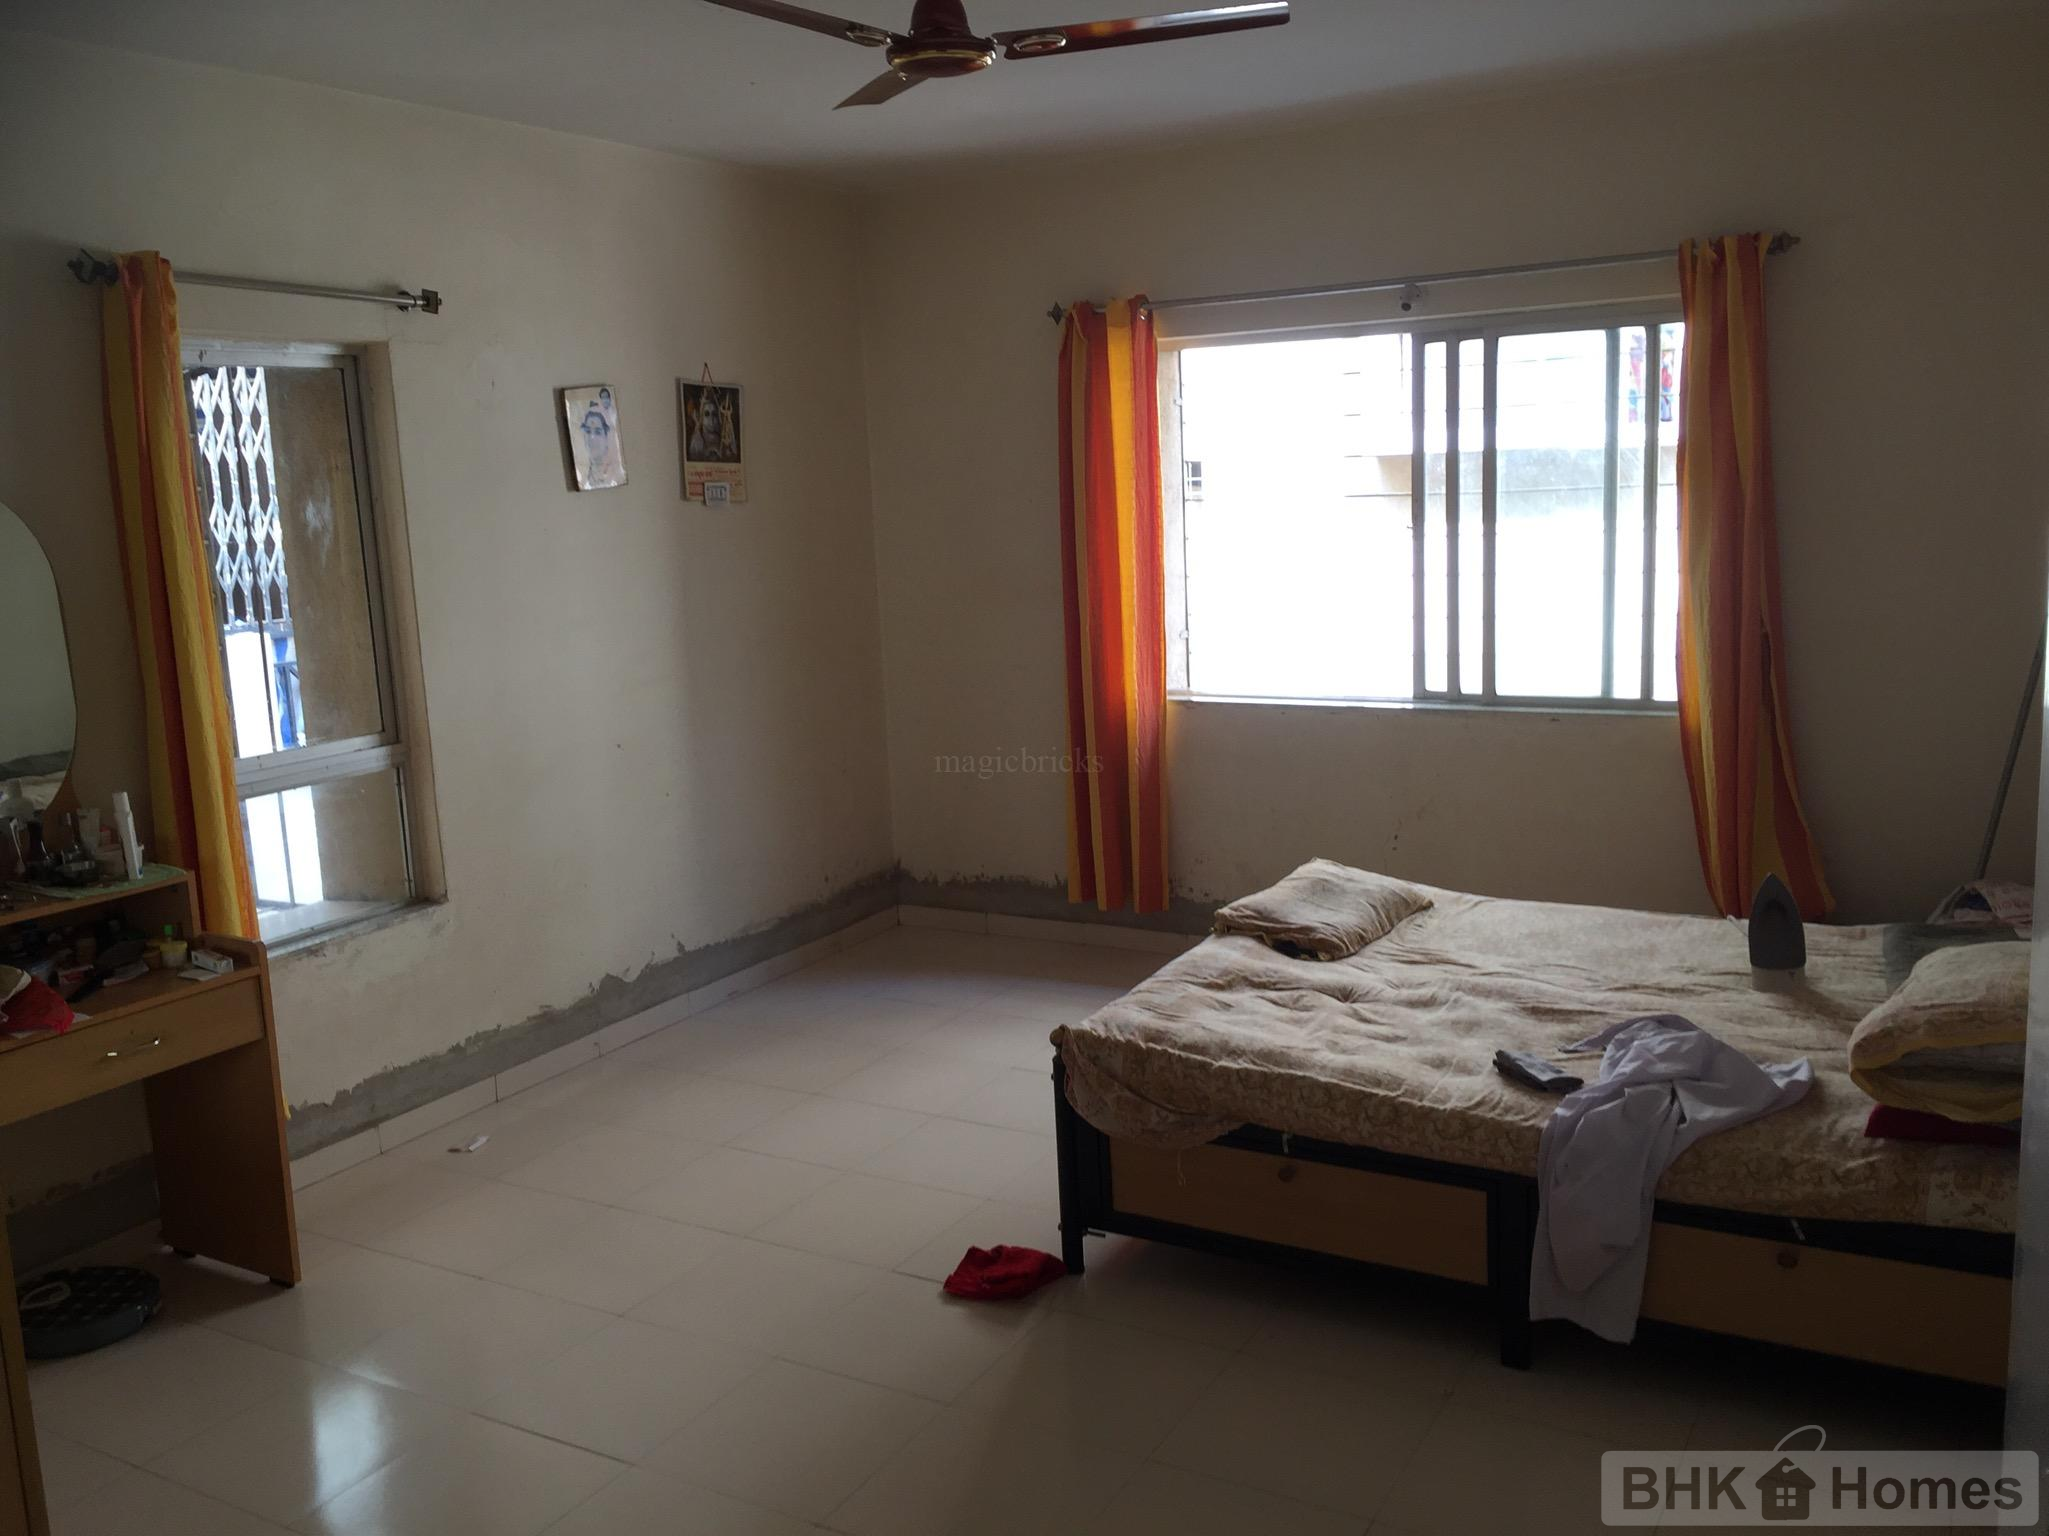 2 BHK Flat for sale in Kondhwa Khurd, Pune